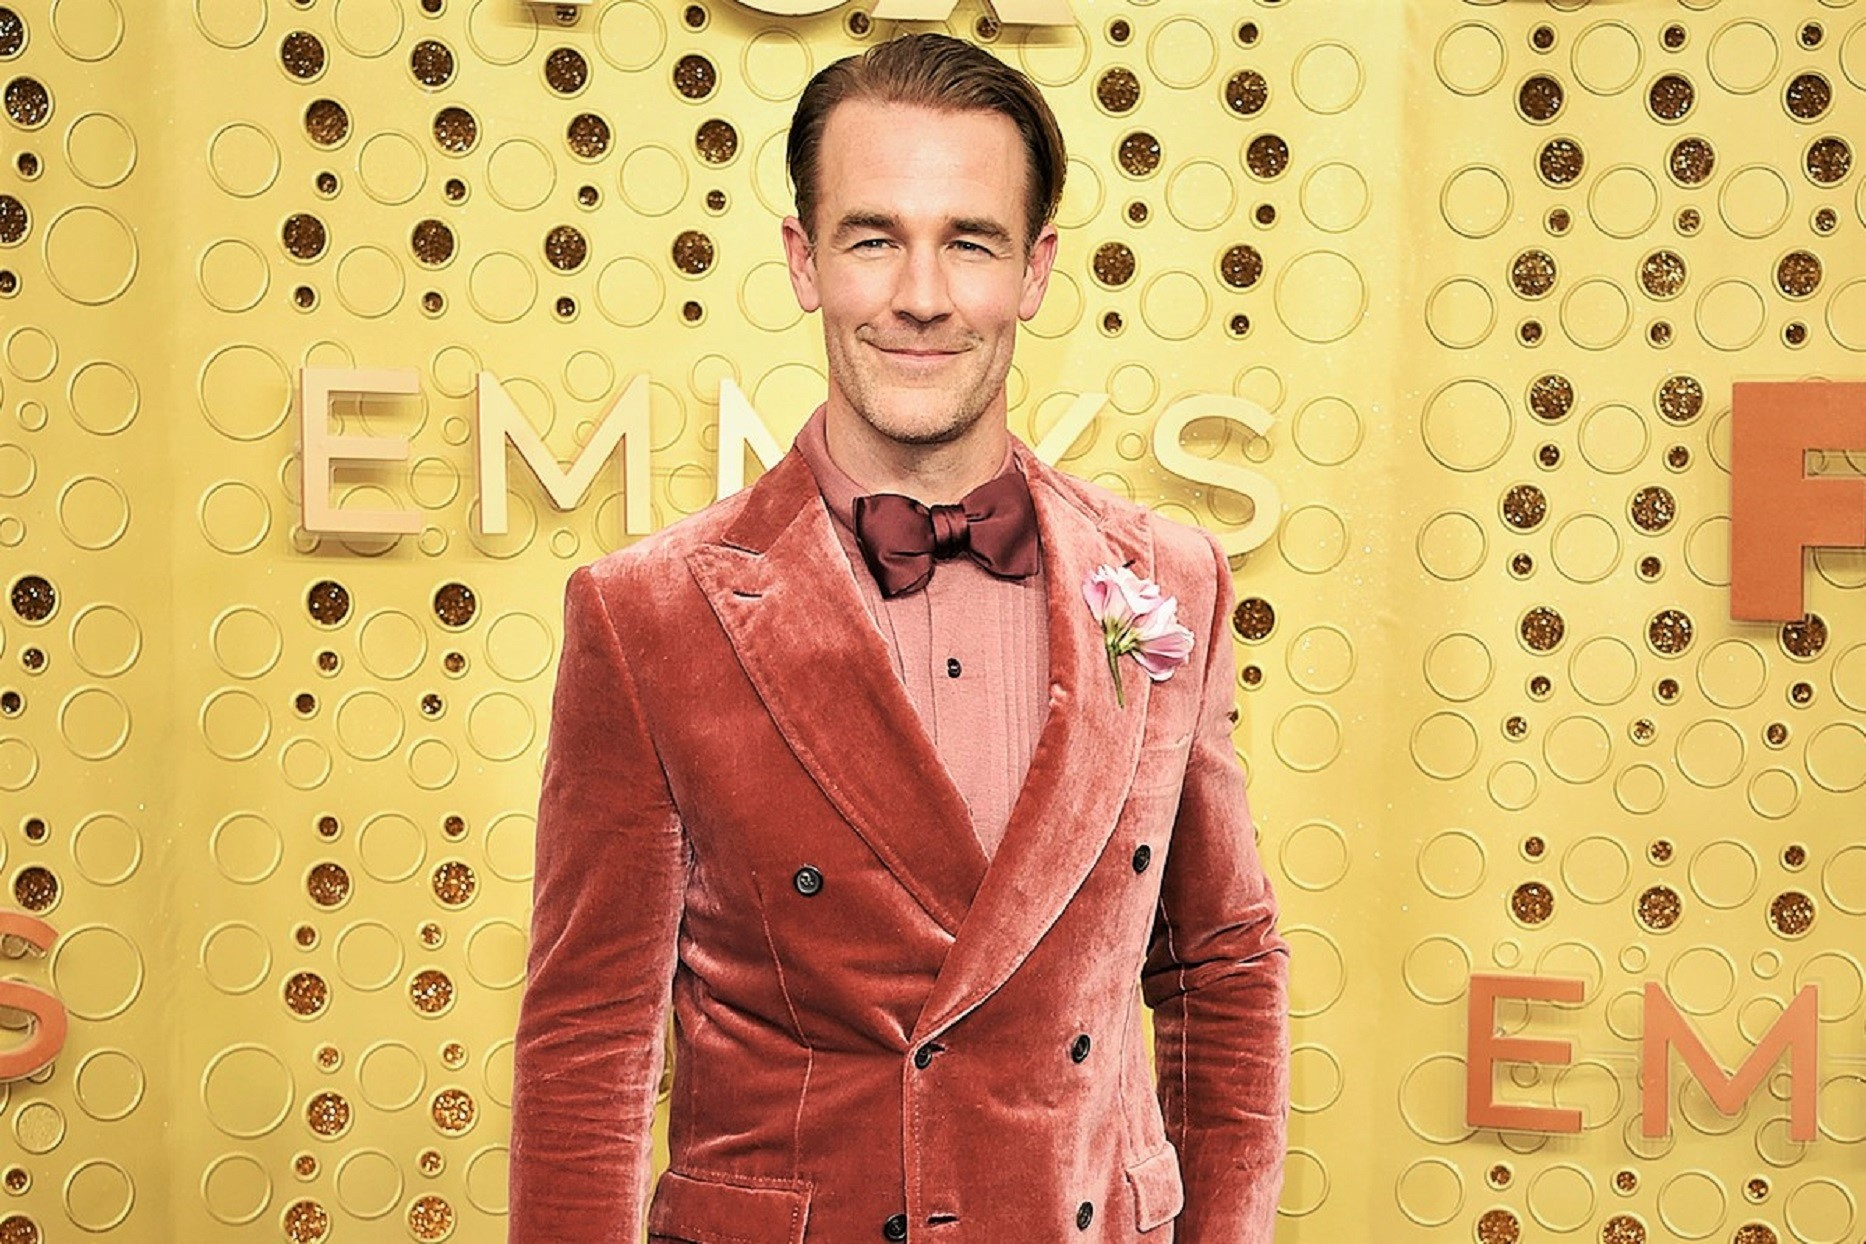 James Van Der Beek in Pink Velvet Suit at Emmy Awards